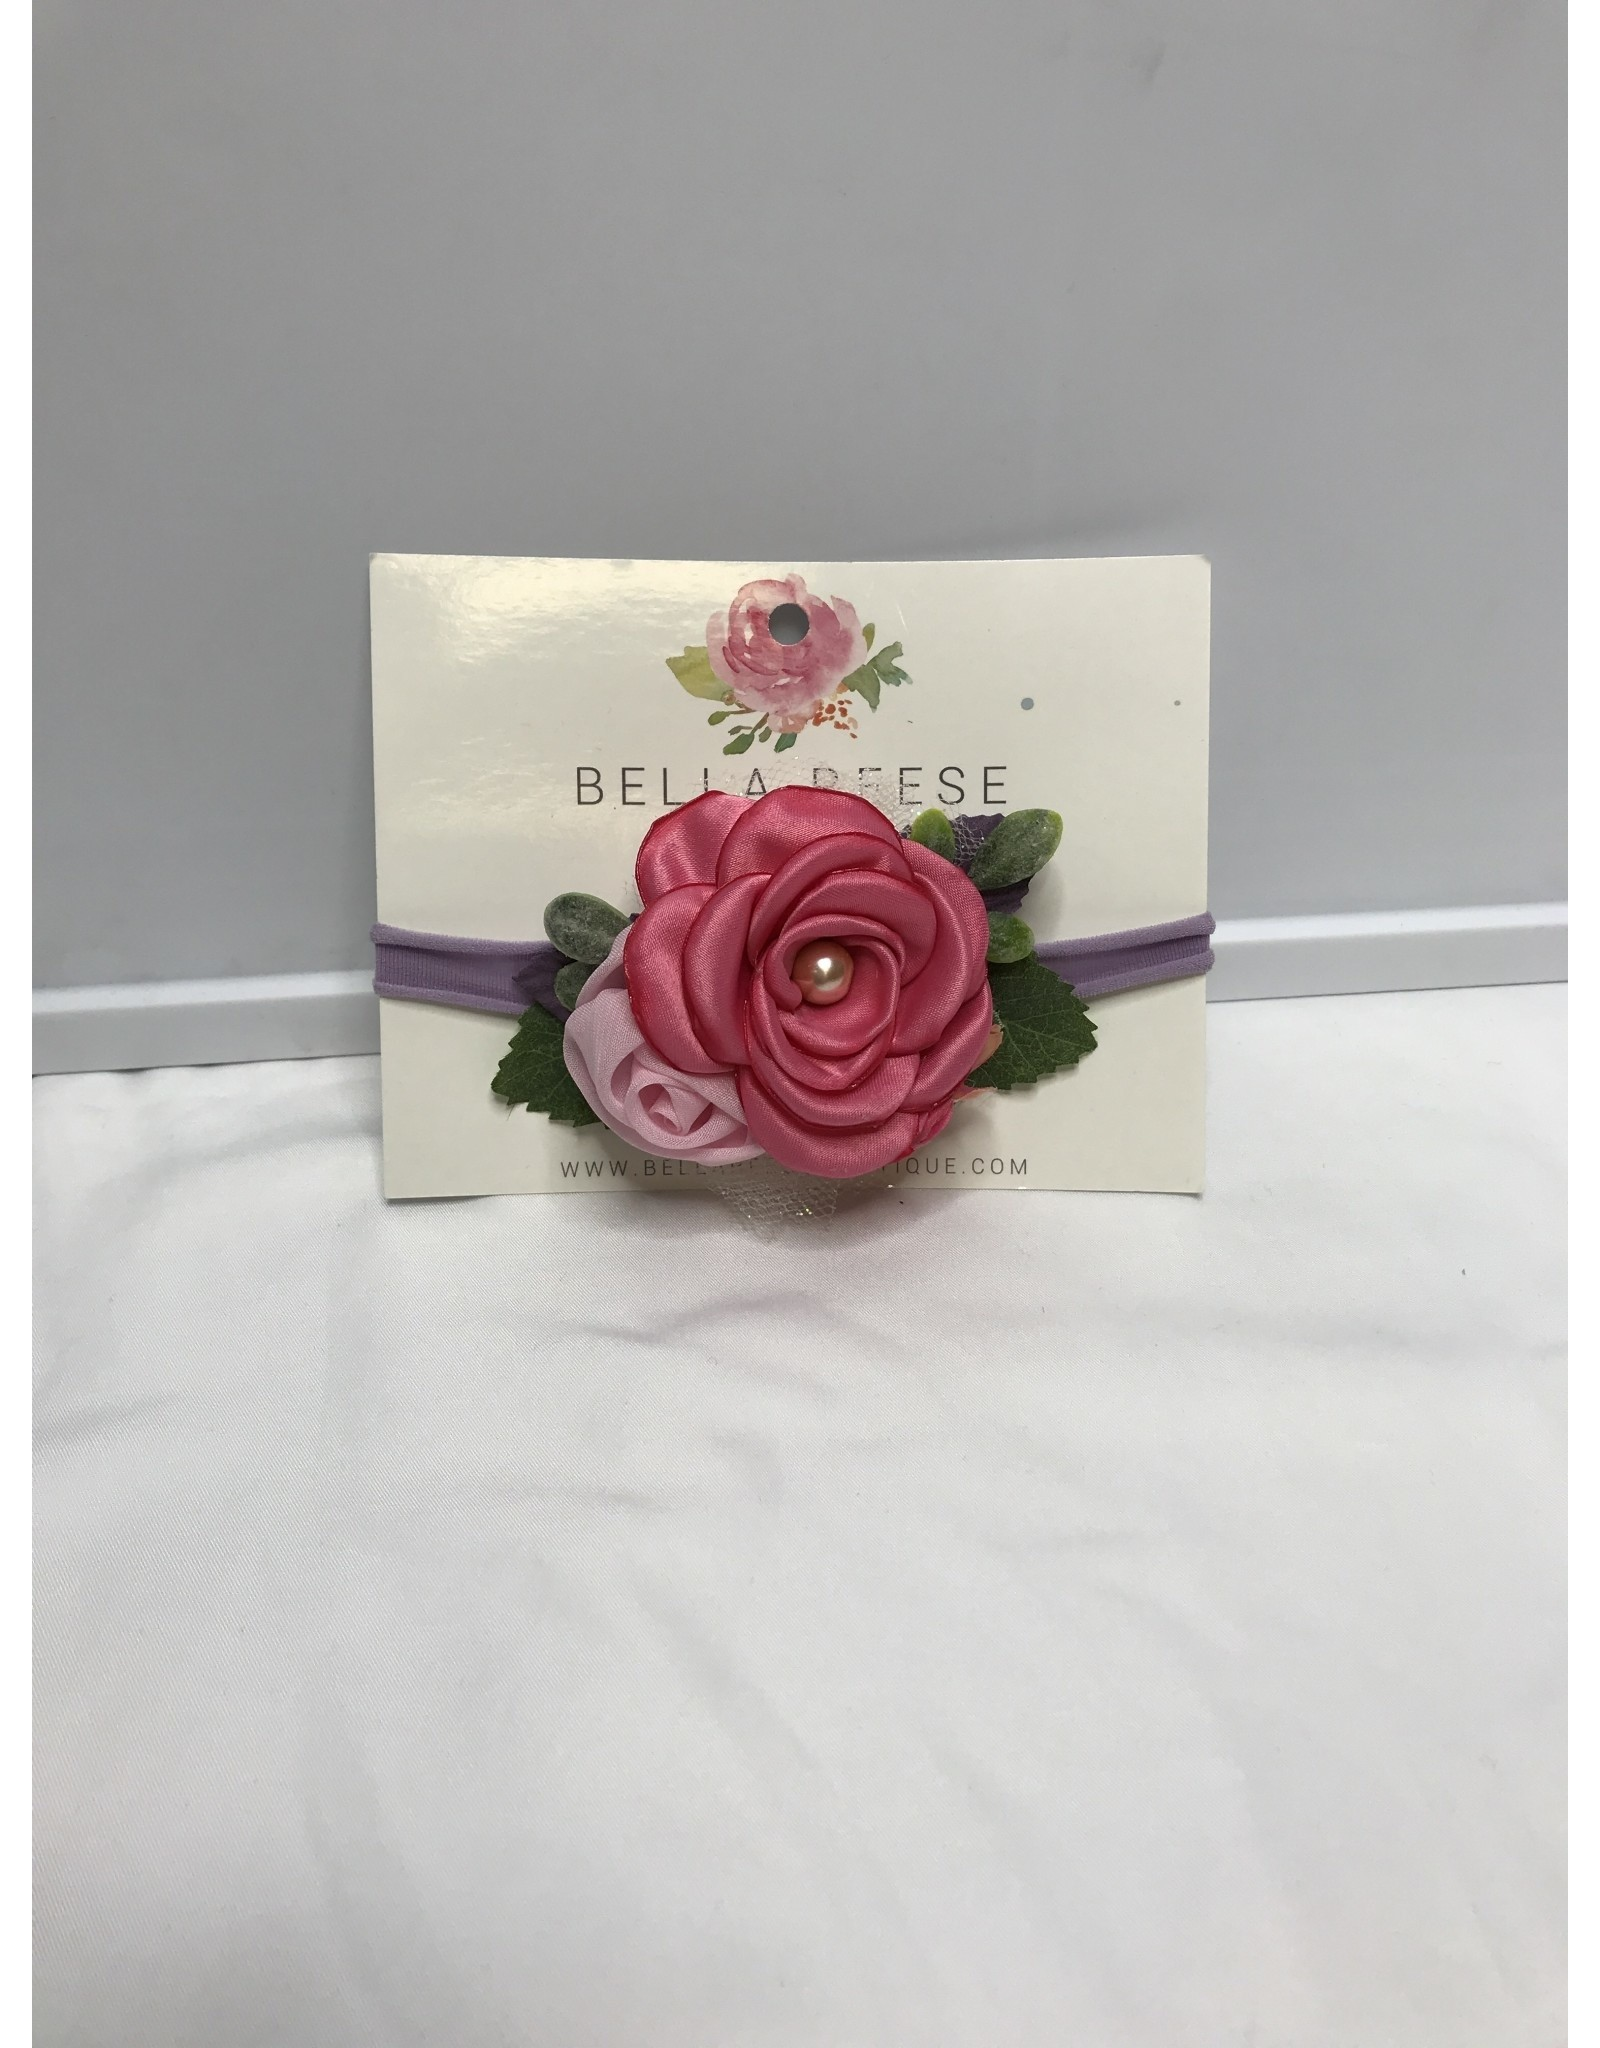 Bella Reese Baby Headbands with Accents-Pink Rose